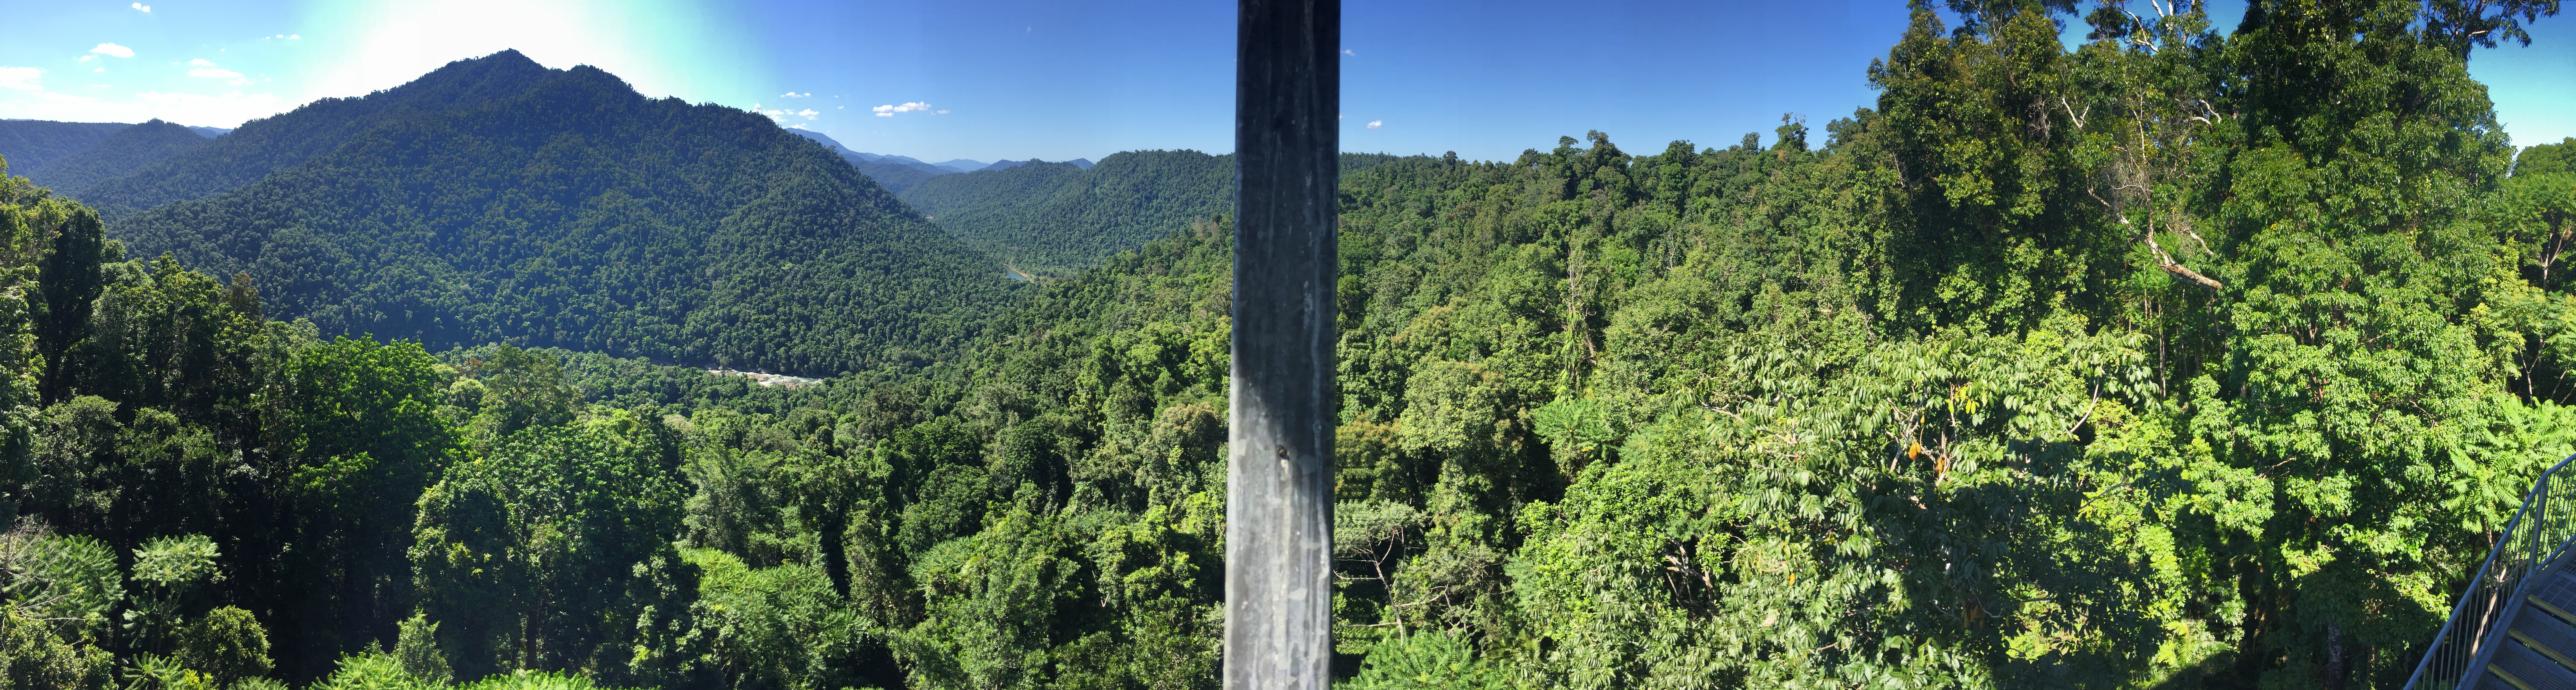 Mamu tropical skywalk observation deck looking out onto Wooroonoon National Park